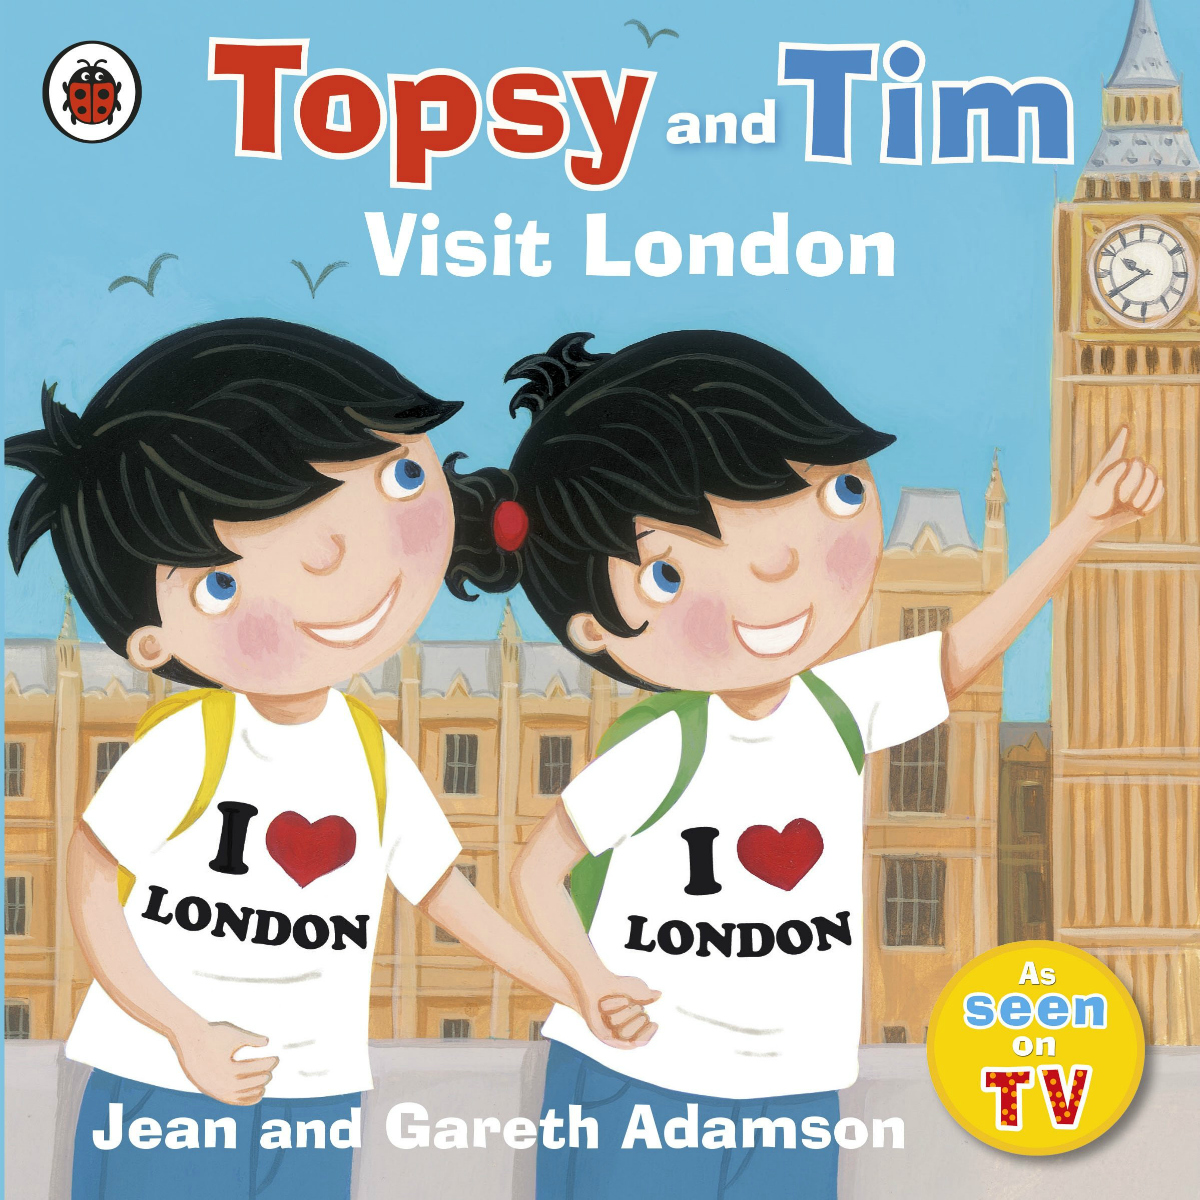 London books for kids - Topsy and Tim #kidsbooks #bookreviews #kidlit #london